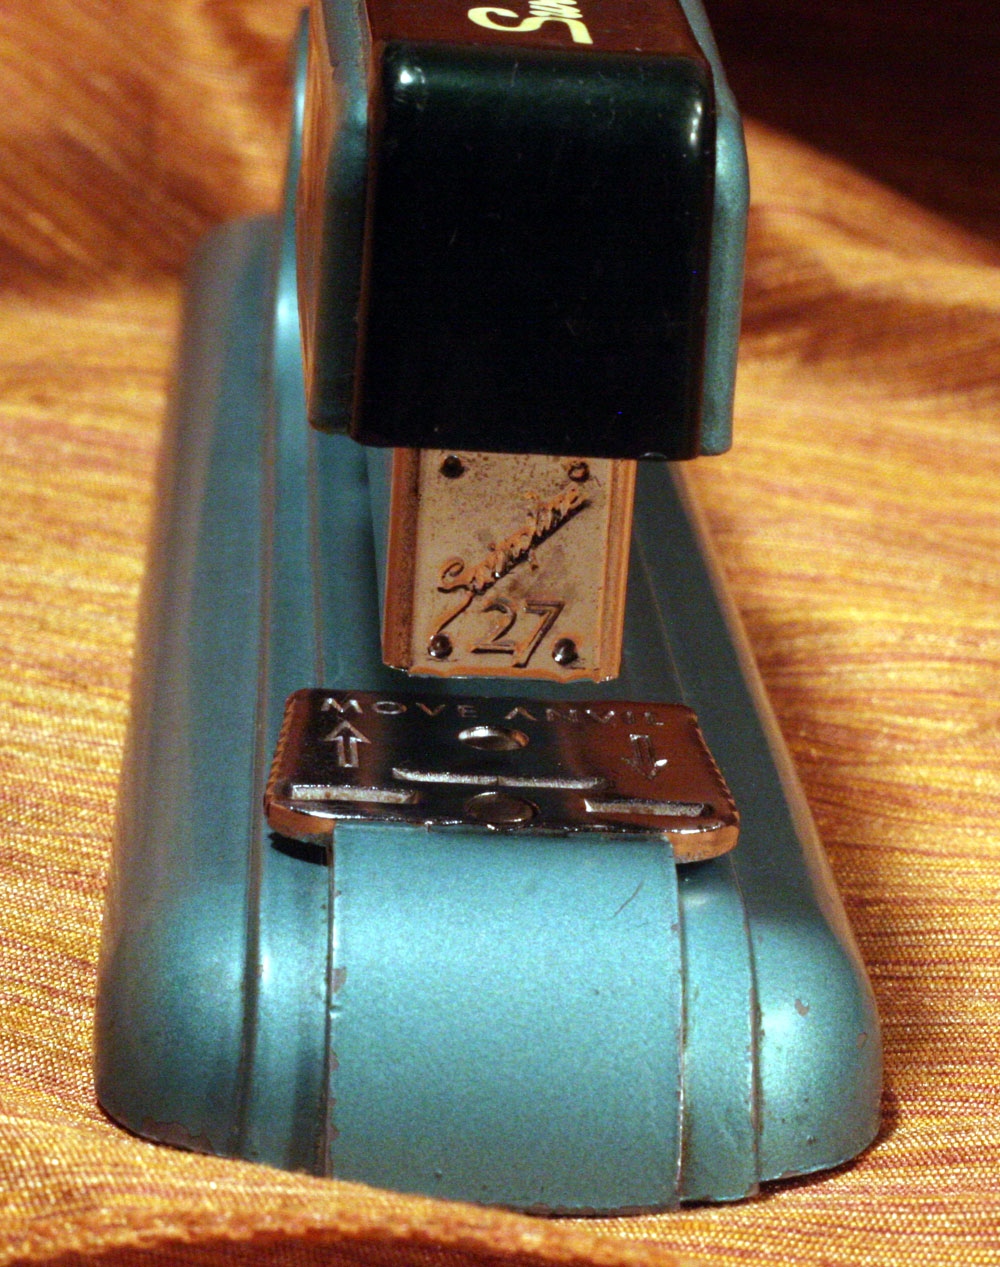 IMG 7332 Stapler of the Week: 1950s School Green and Teal Swingline Model 27